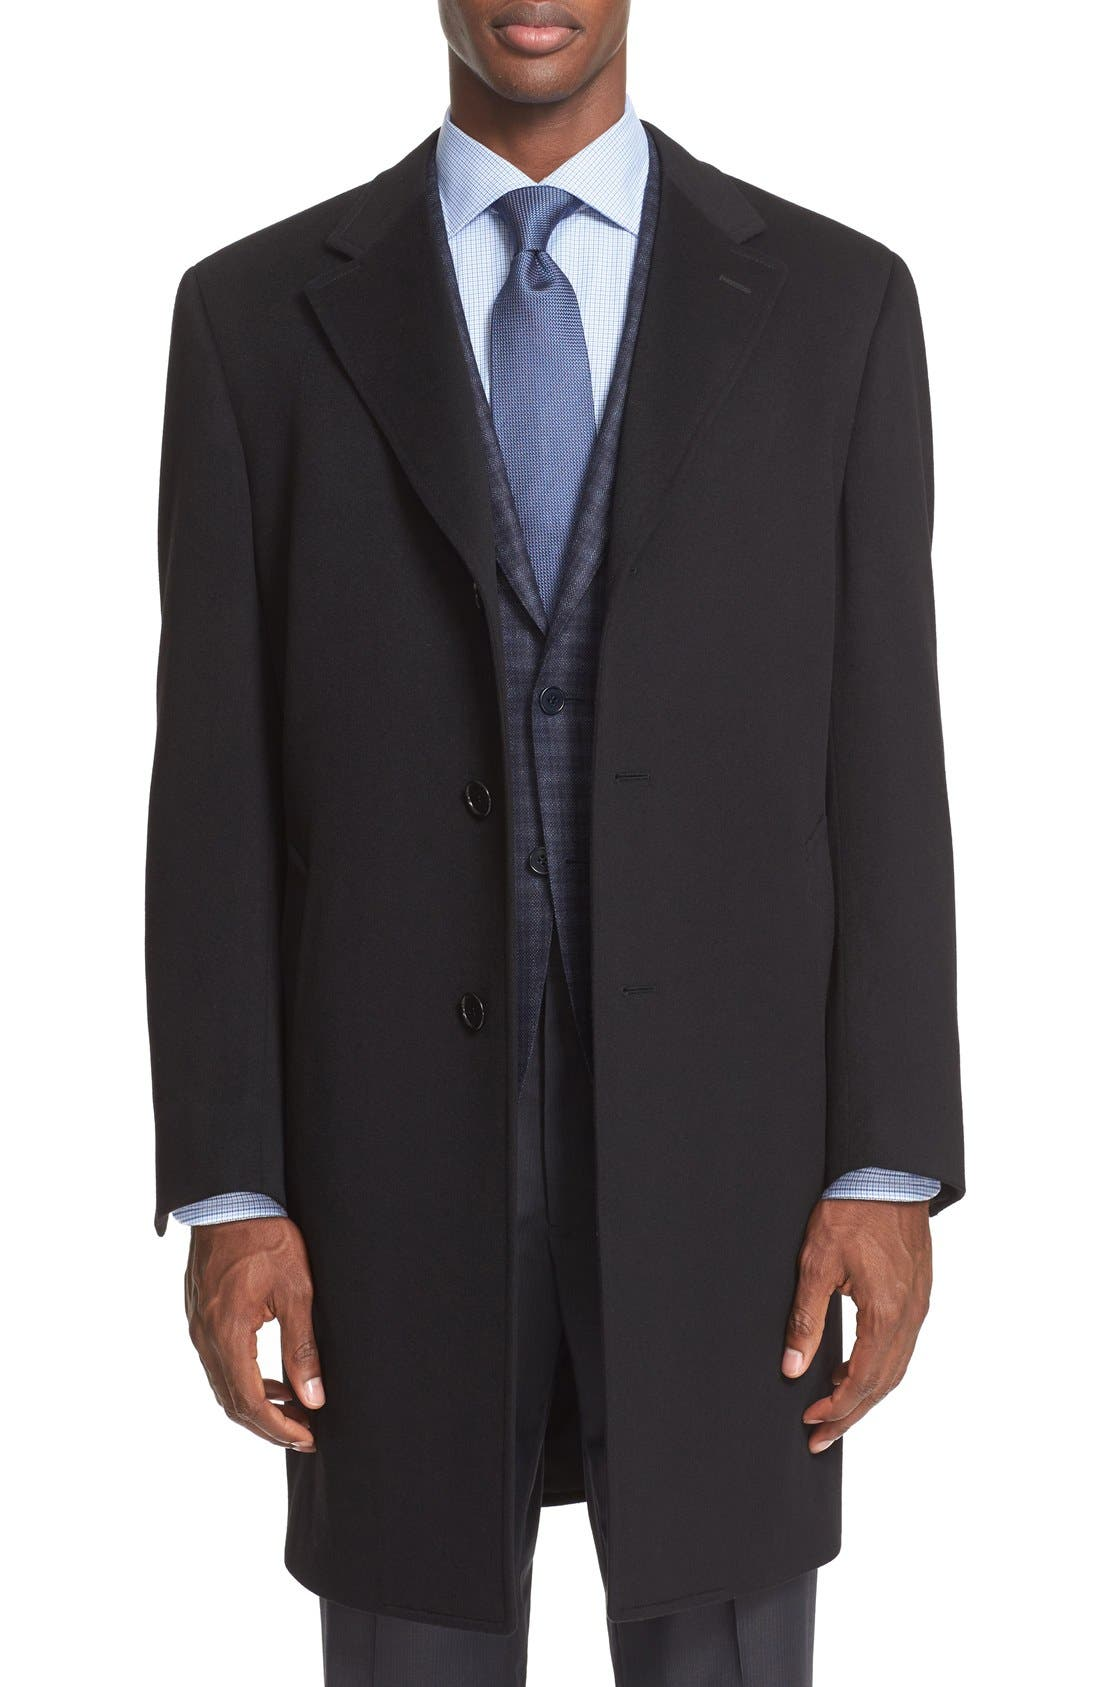 Alternate Image 1 Selected - Canali Classic Fit Wool & Cashmere Topcoat